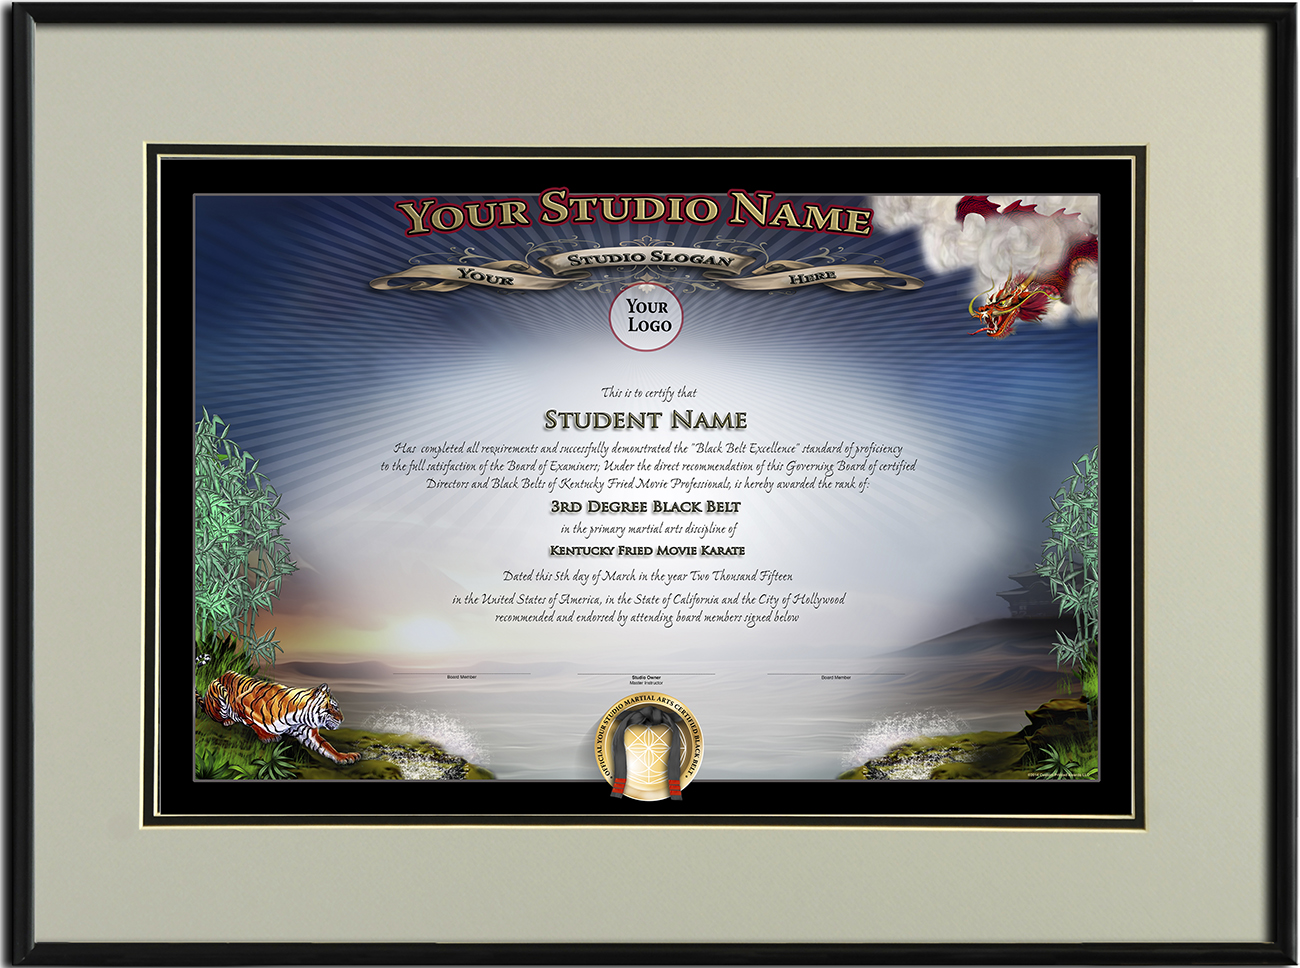 martial arts certificate templates gallery - templates example, Presentation templates